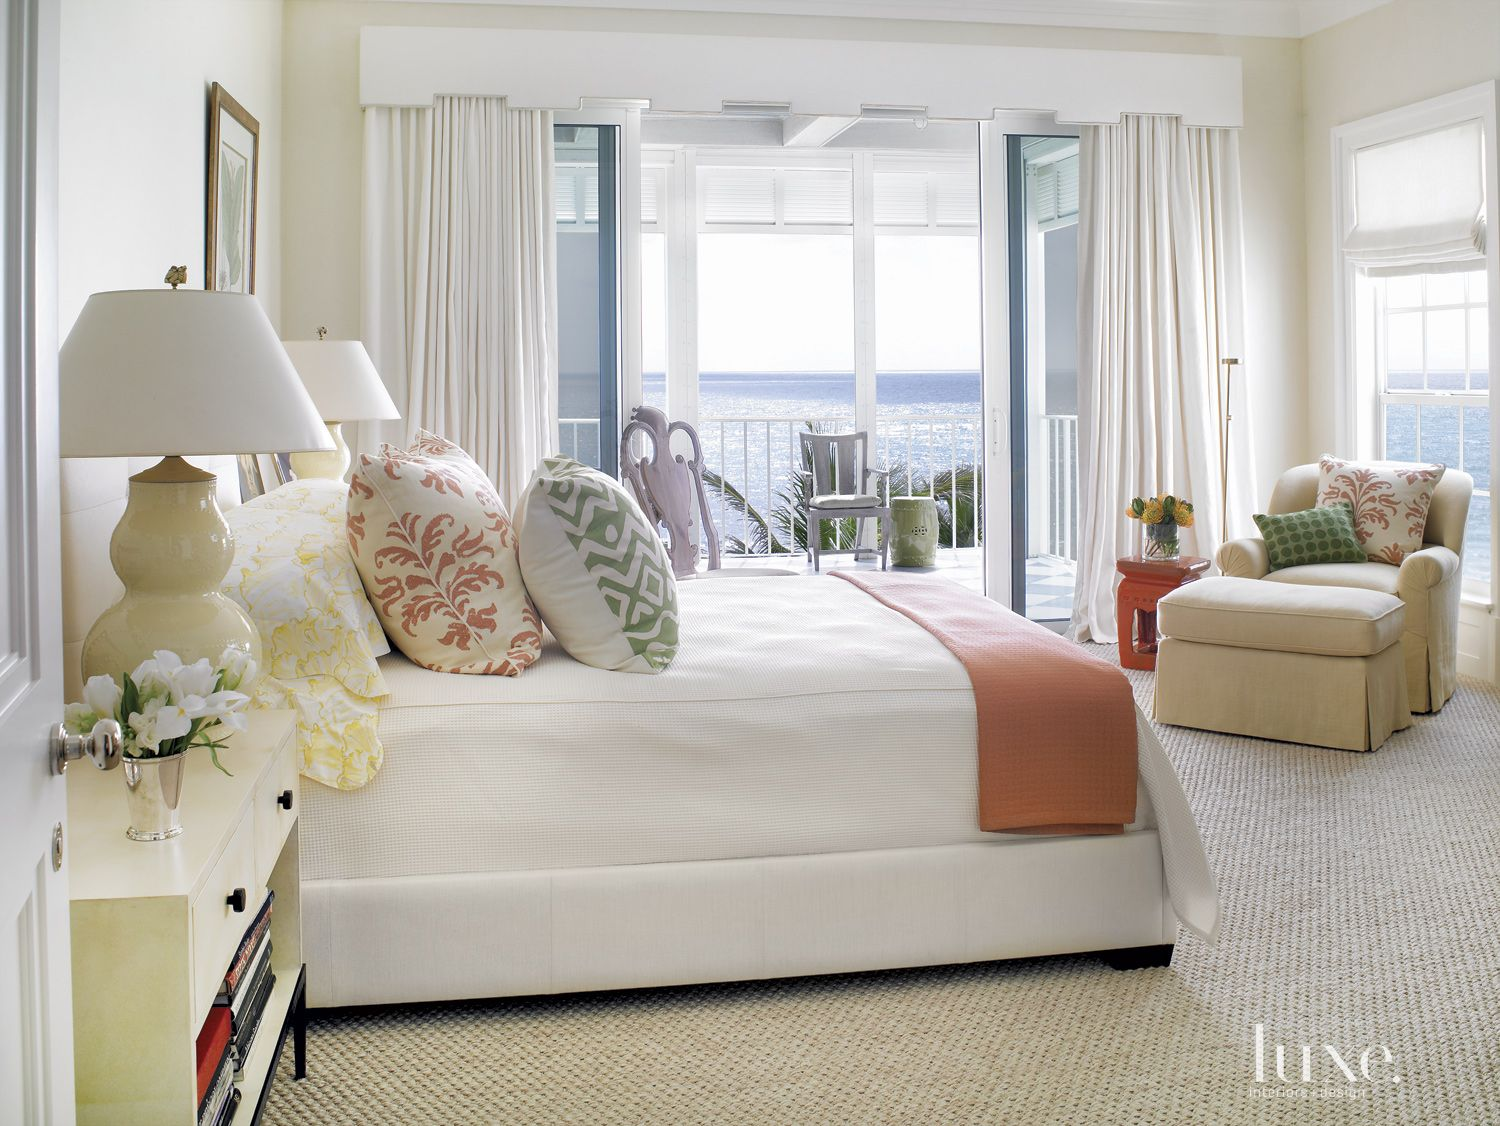 Eclectic White Master Bedroom with Orange Accents